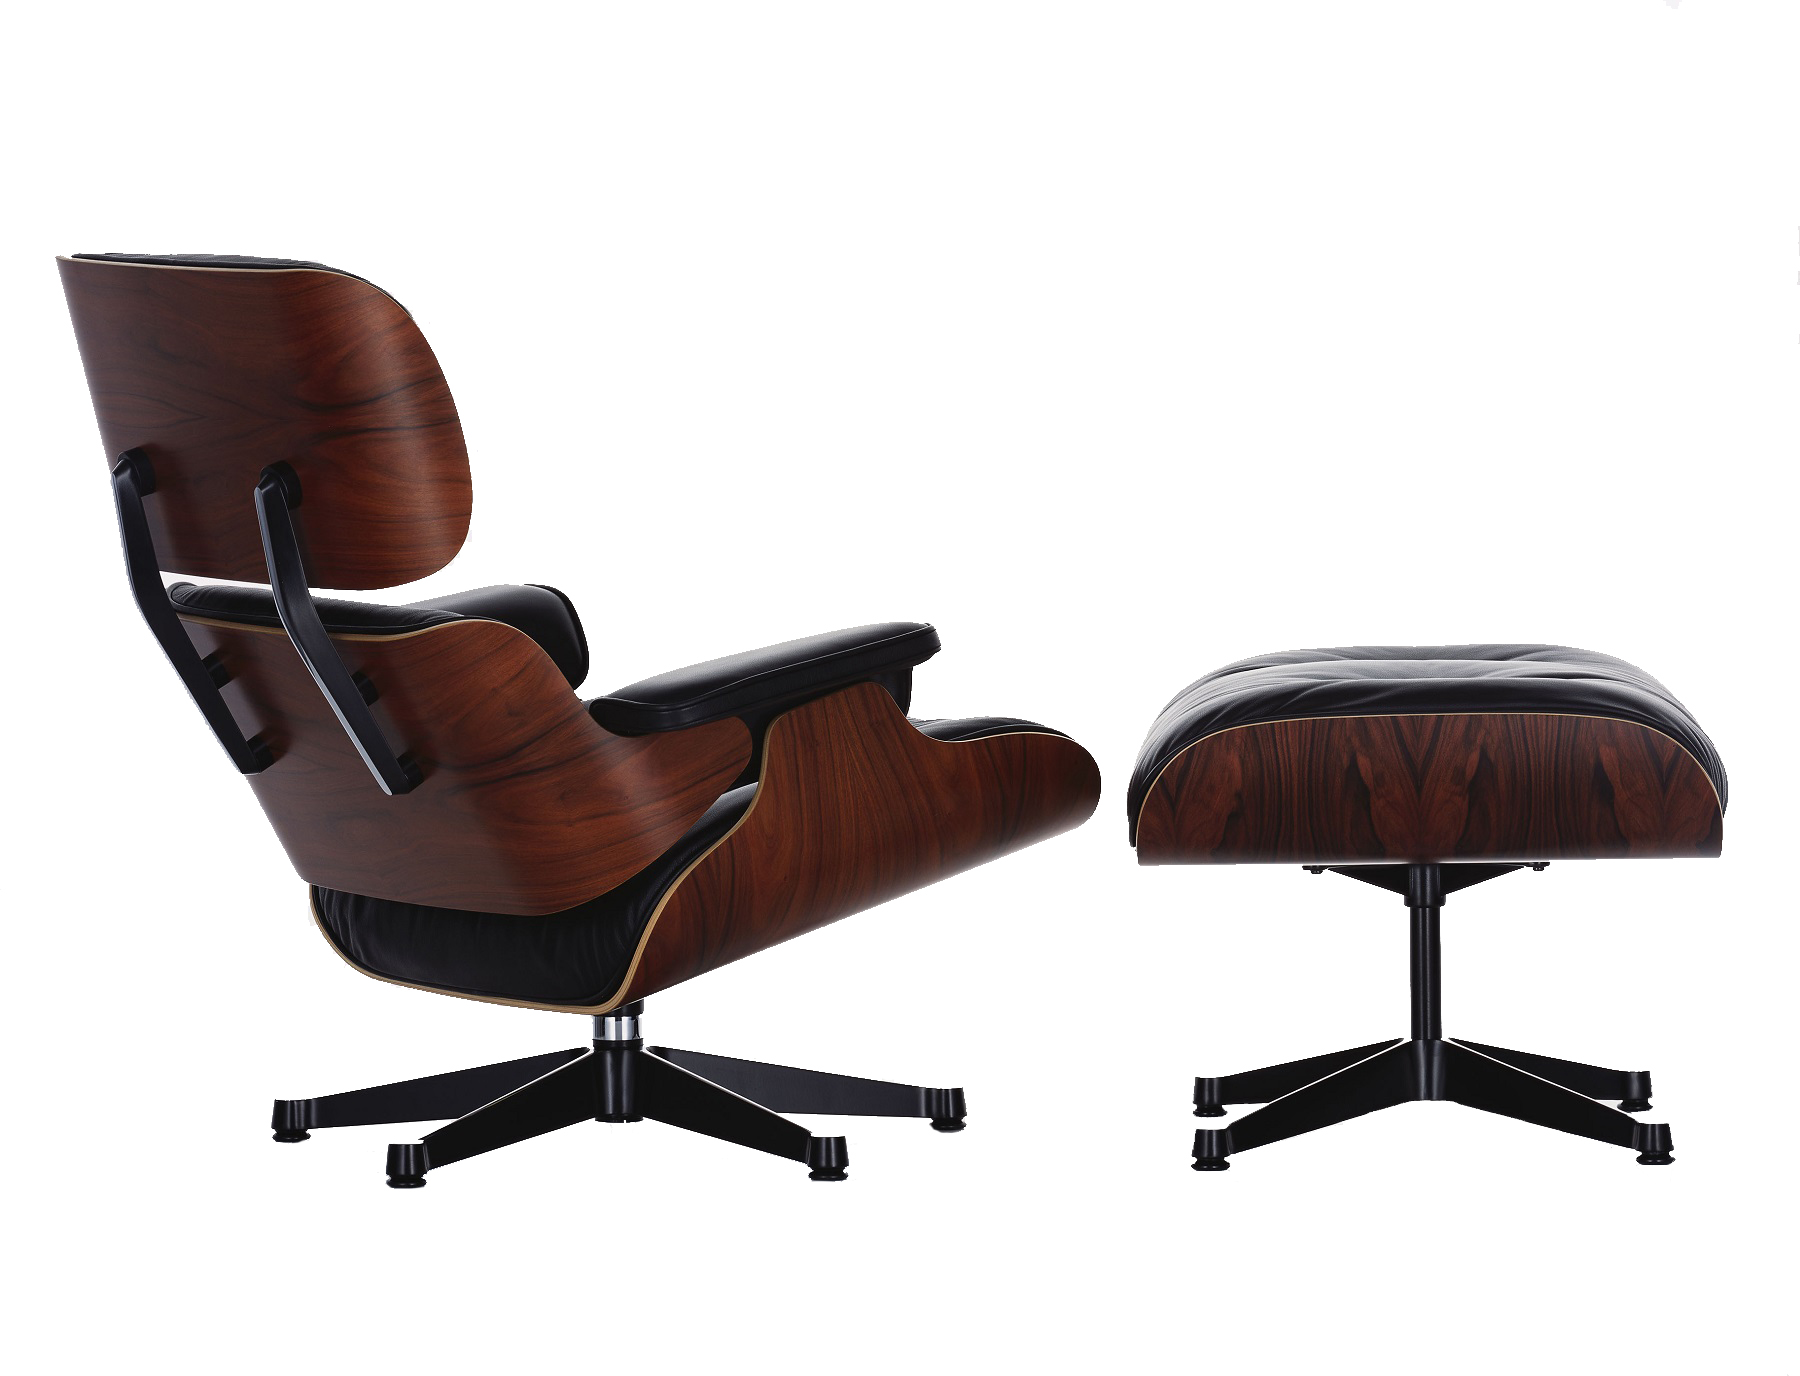 Sensational Vitra Sessel Eames Lounge Chair Ottoman Santos Palisander Aktion Upgrade Creativecarmelina Interior Chair Design Creativecarmelinacom